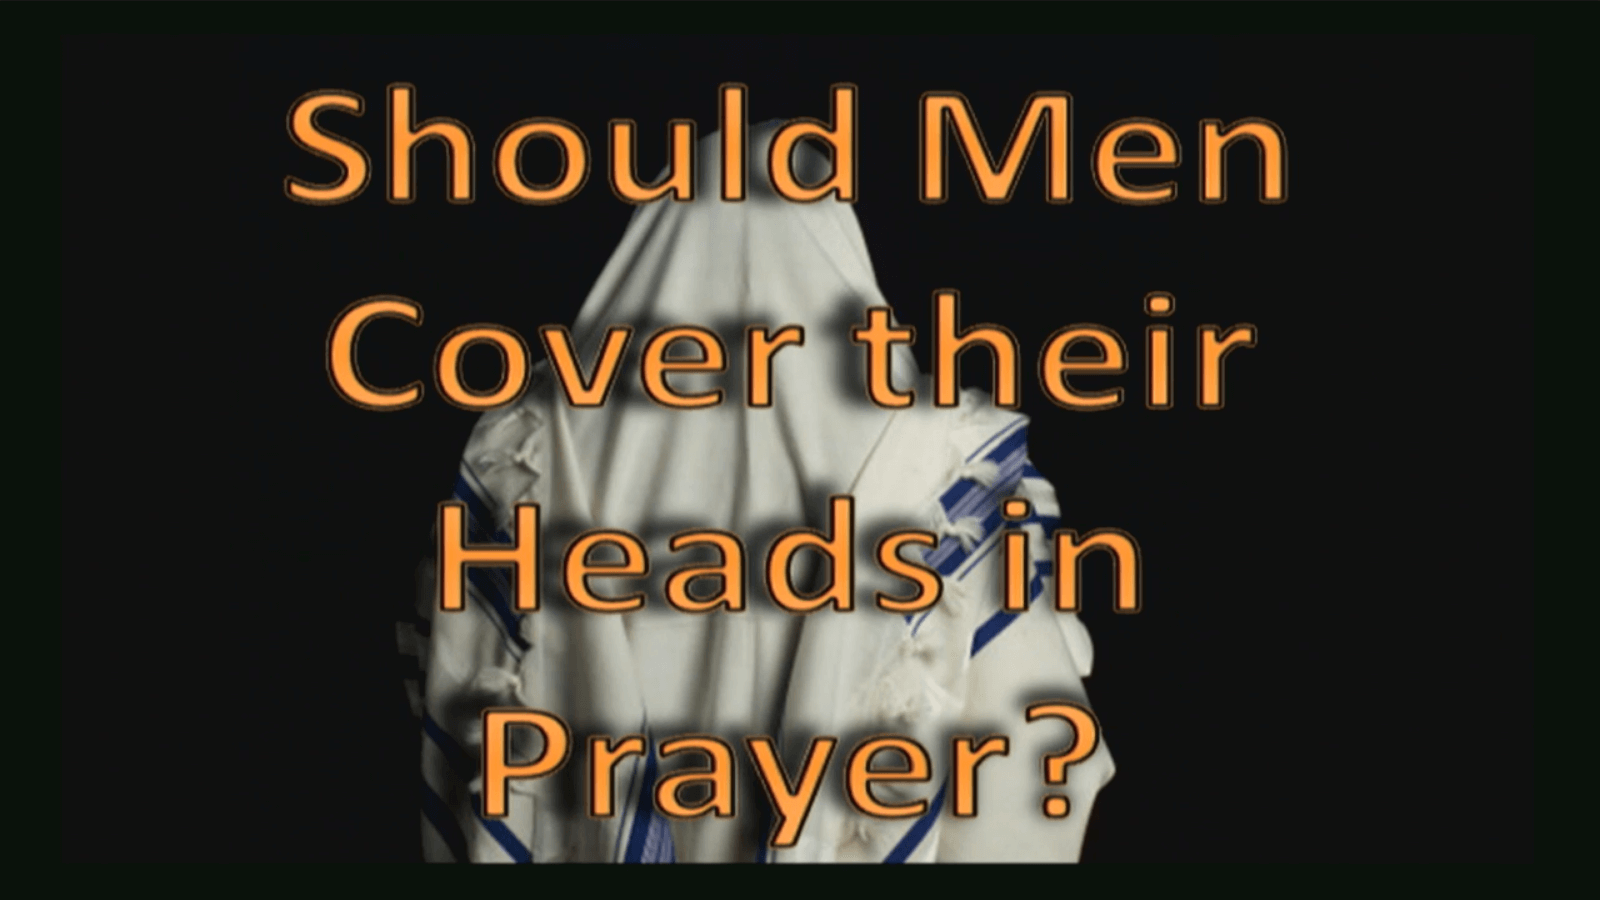 Should Men Cover Their Heads in Prayer?